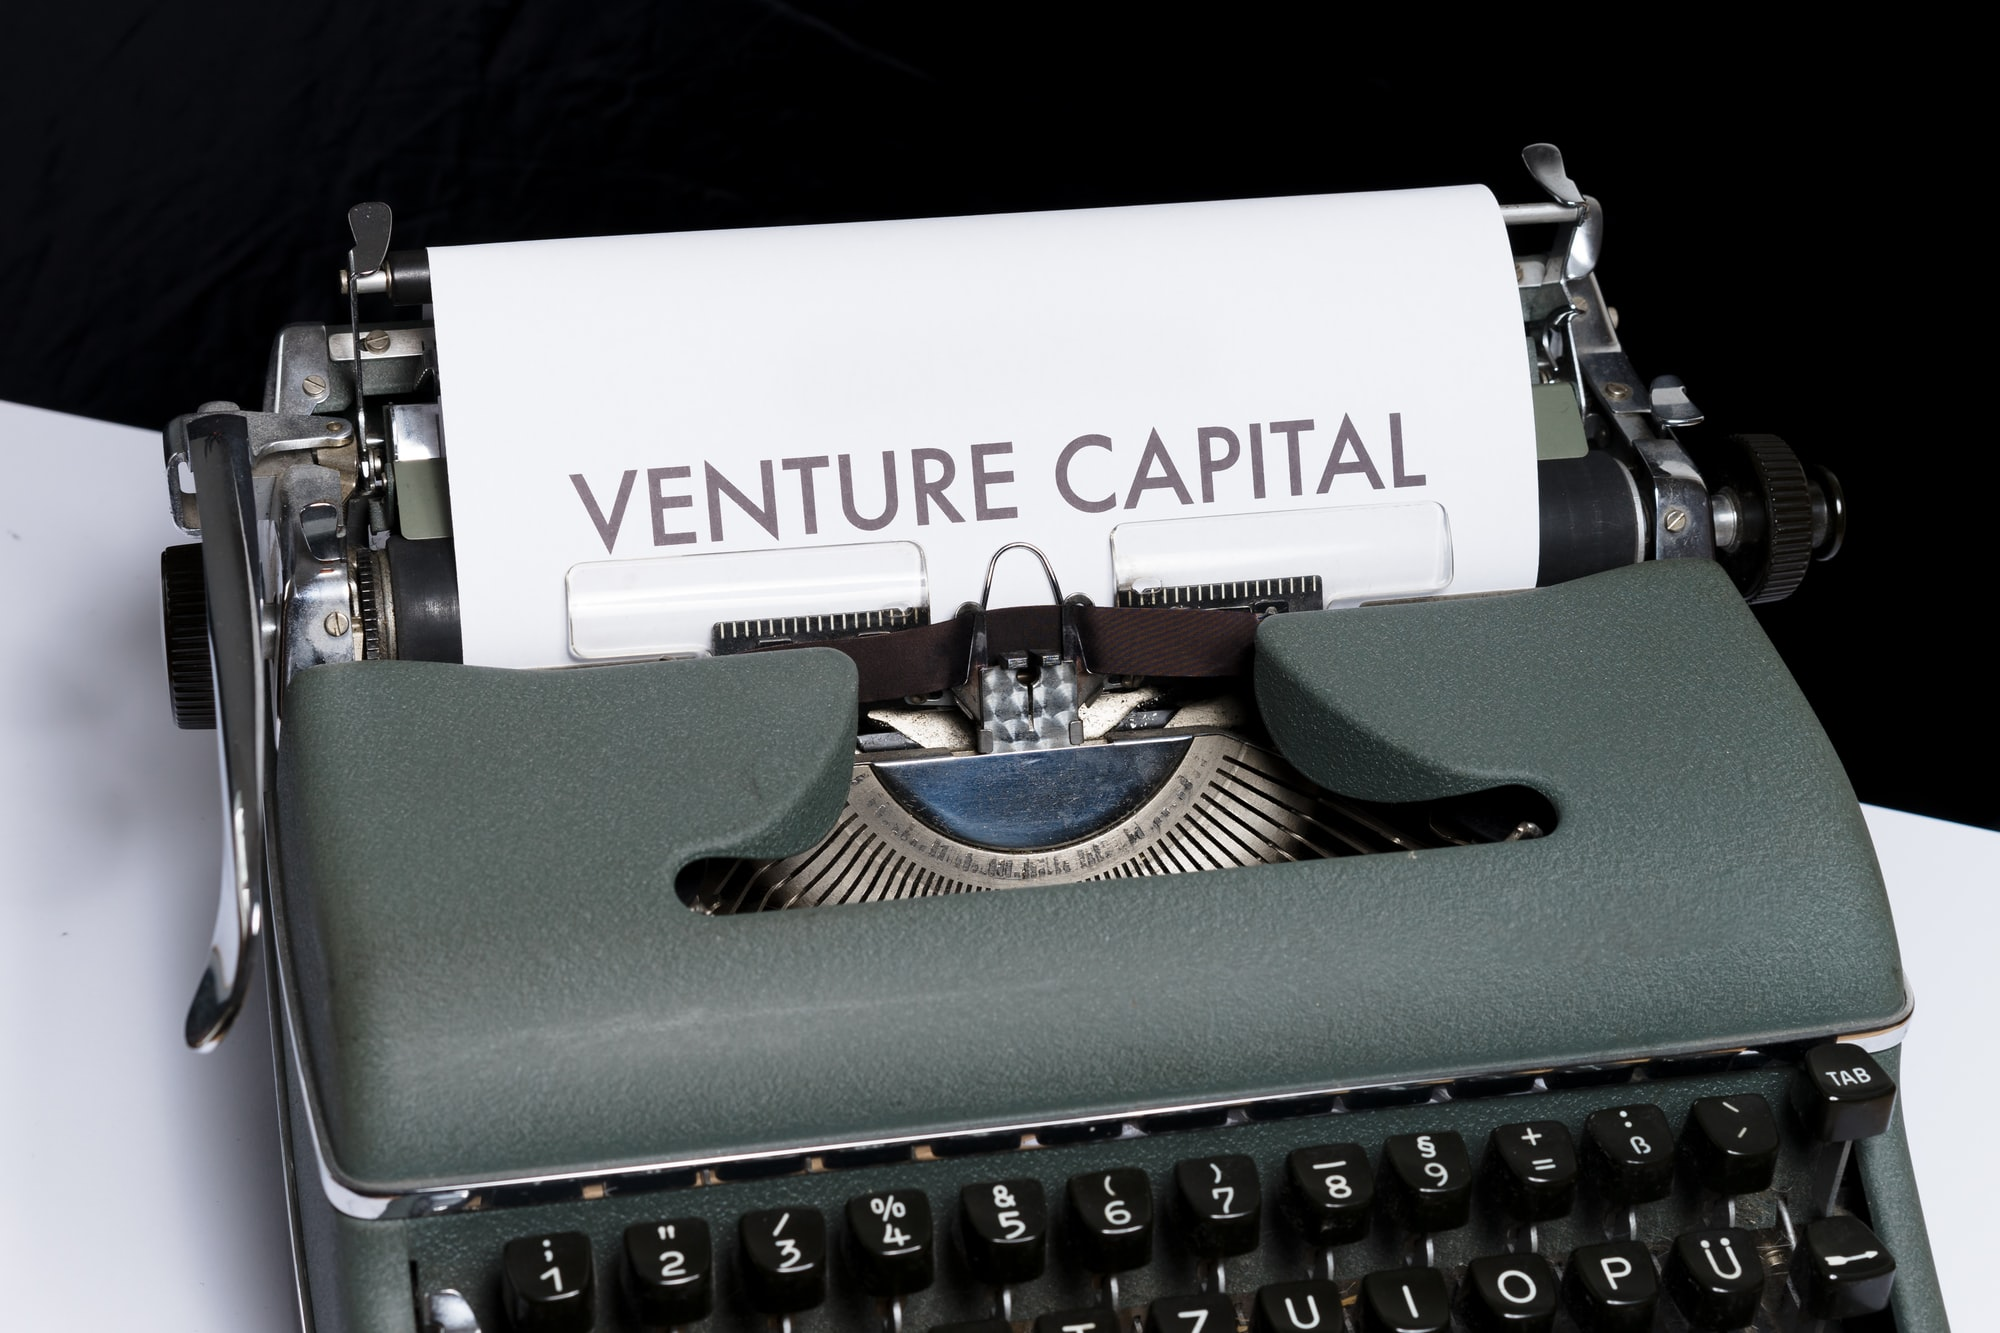 Entrée Capital secures $125M looking to give growth-stage startups a big opportunity